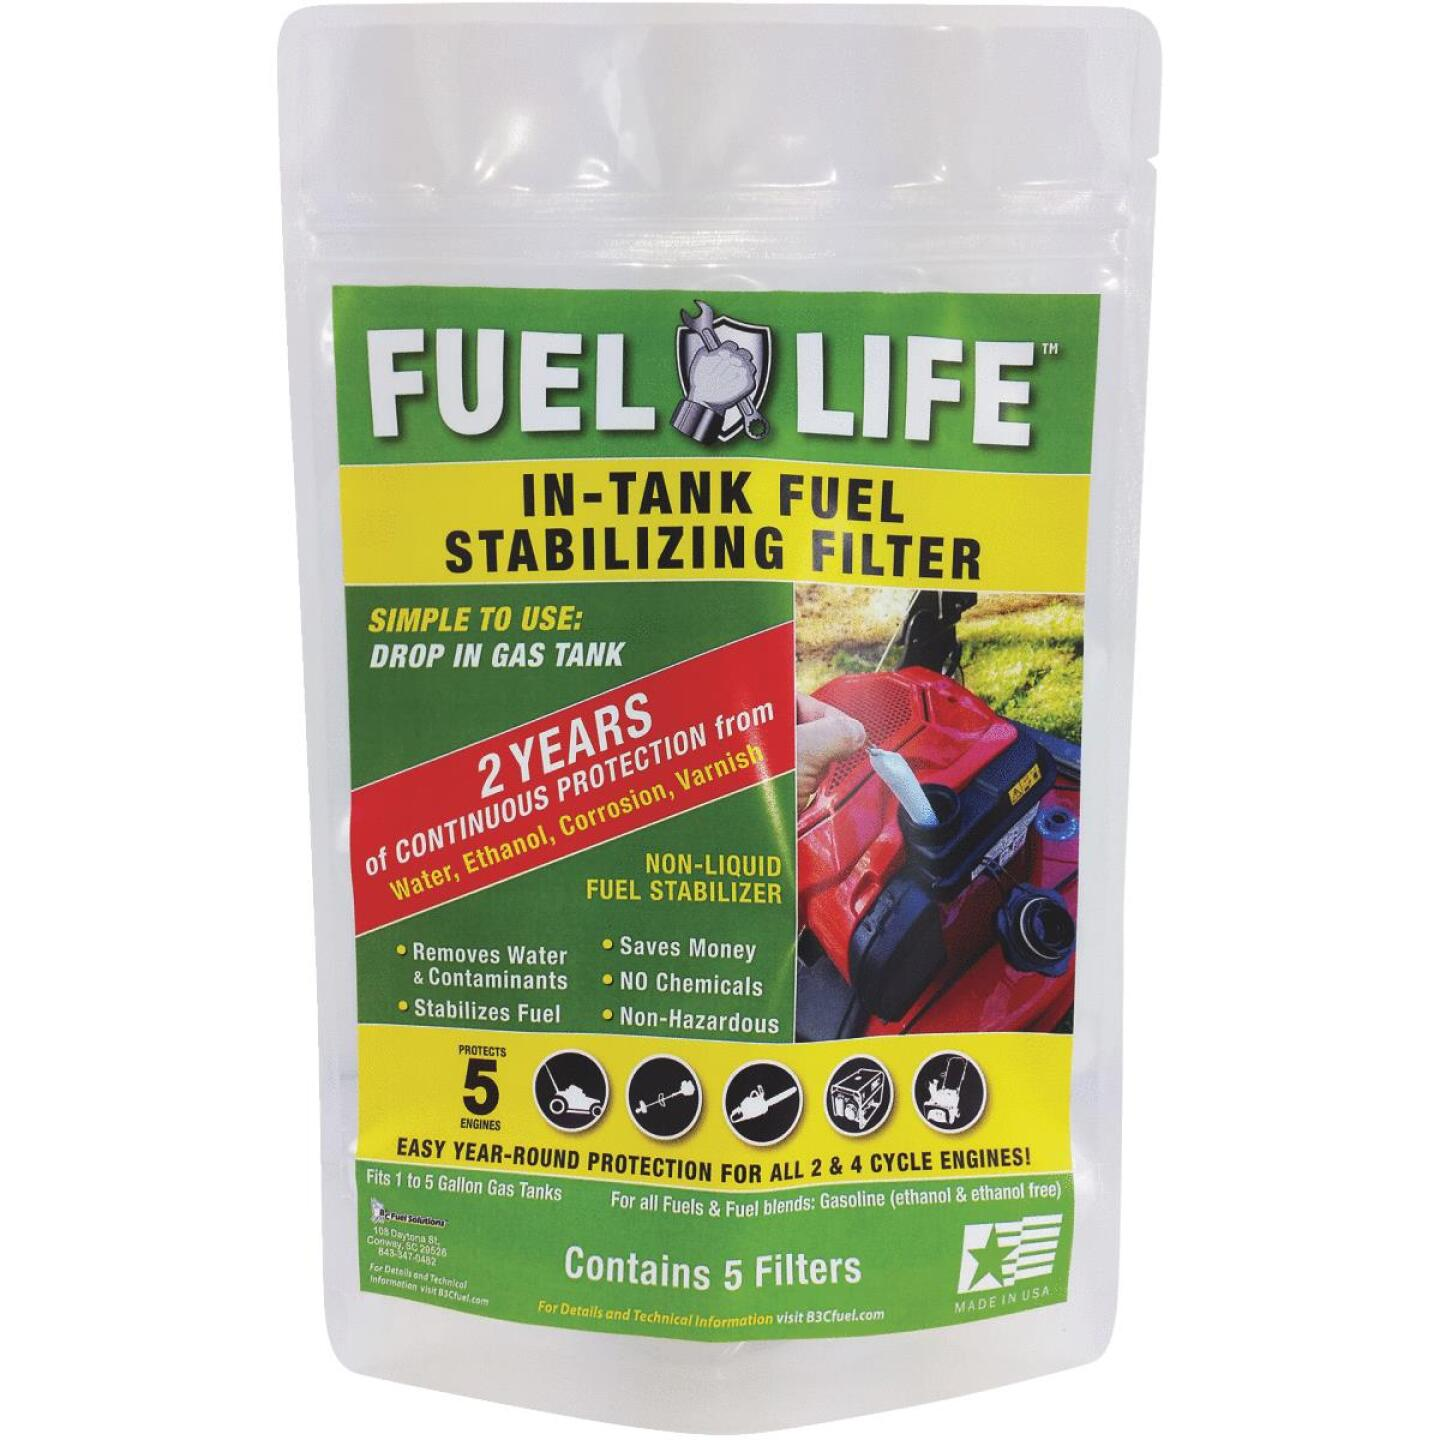 Fuel Life In-Tank Fuel Stabilizing Filter (5 pack) Image 1